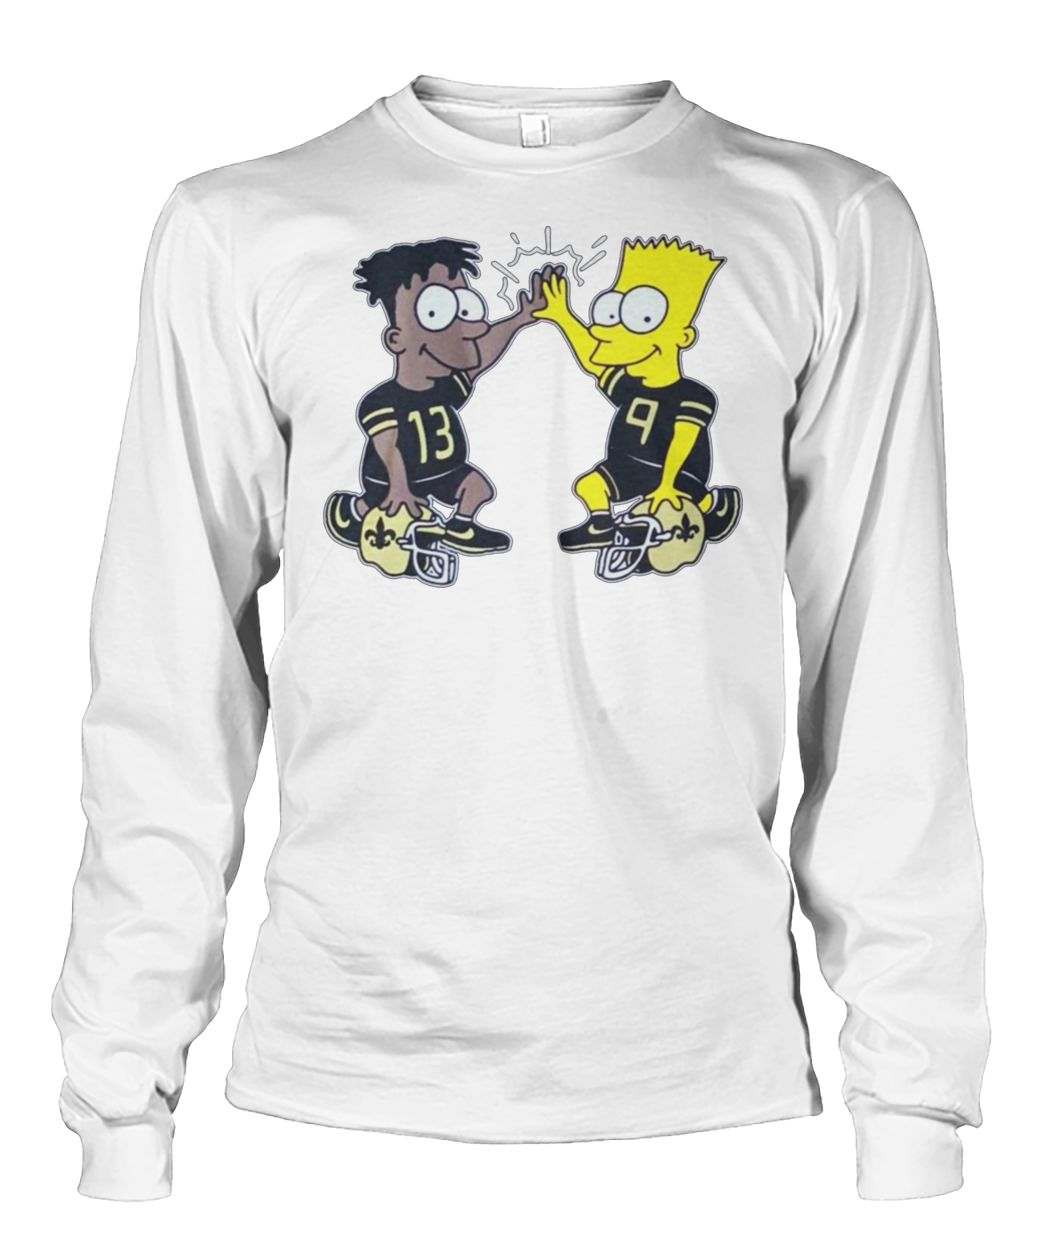 NFL new orleans saints michael thomas simpsons dynamic duo unisex long sleeve